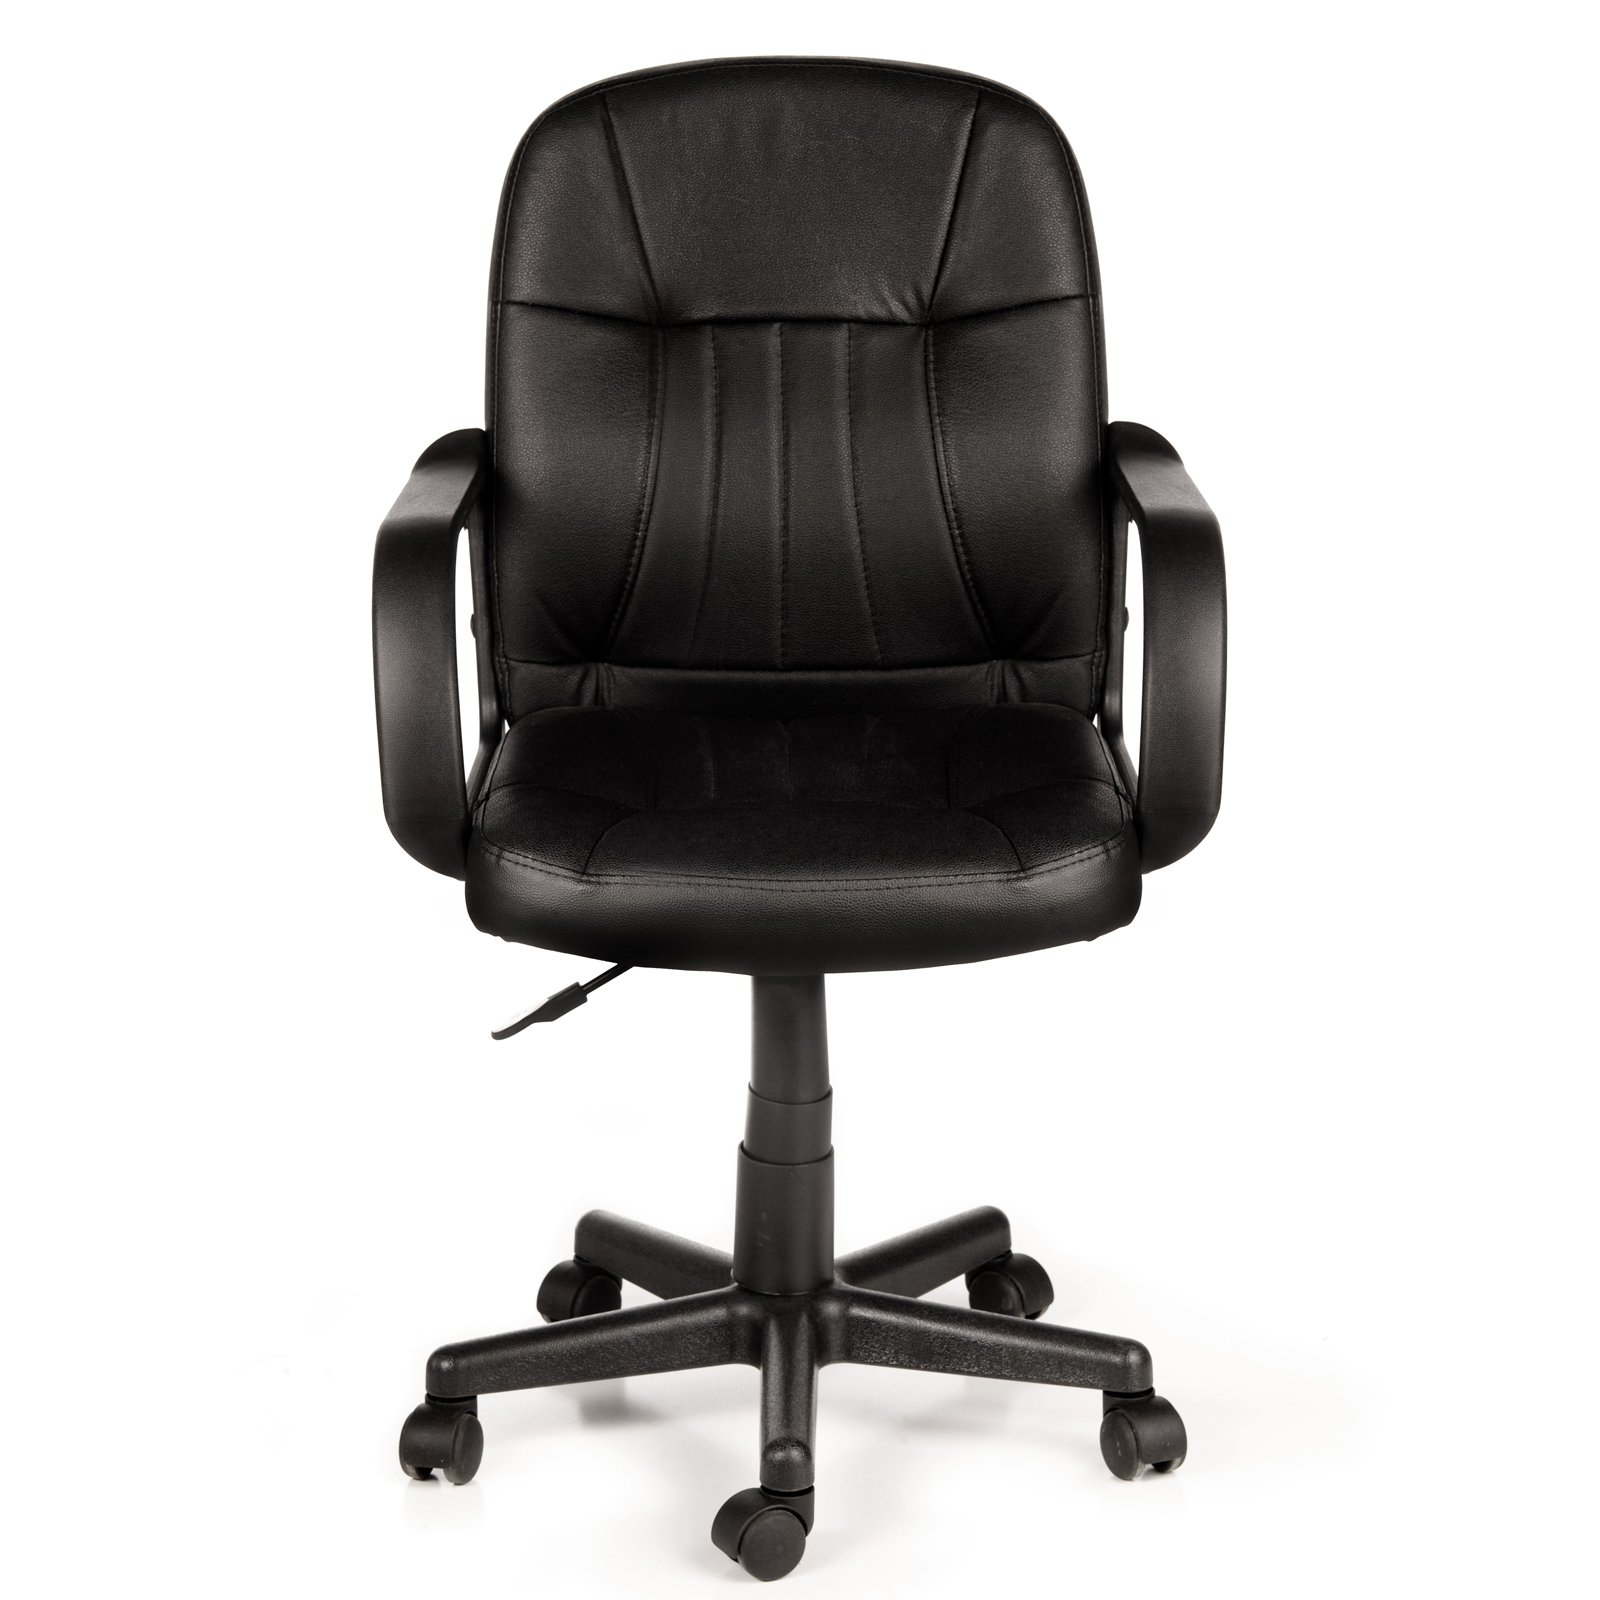 Product Image Comfort Products 60-5607M Mid-Back Leather Office Chair, Black